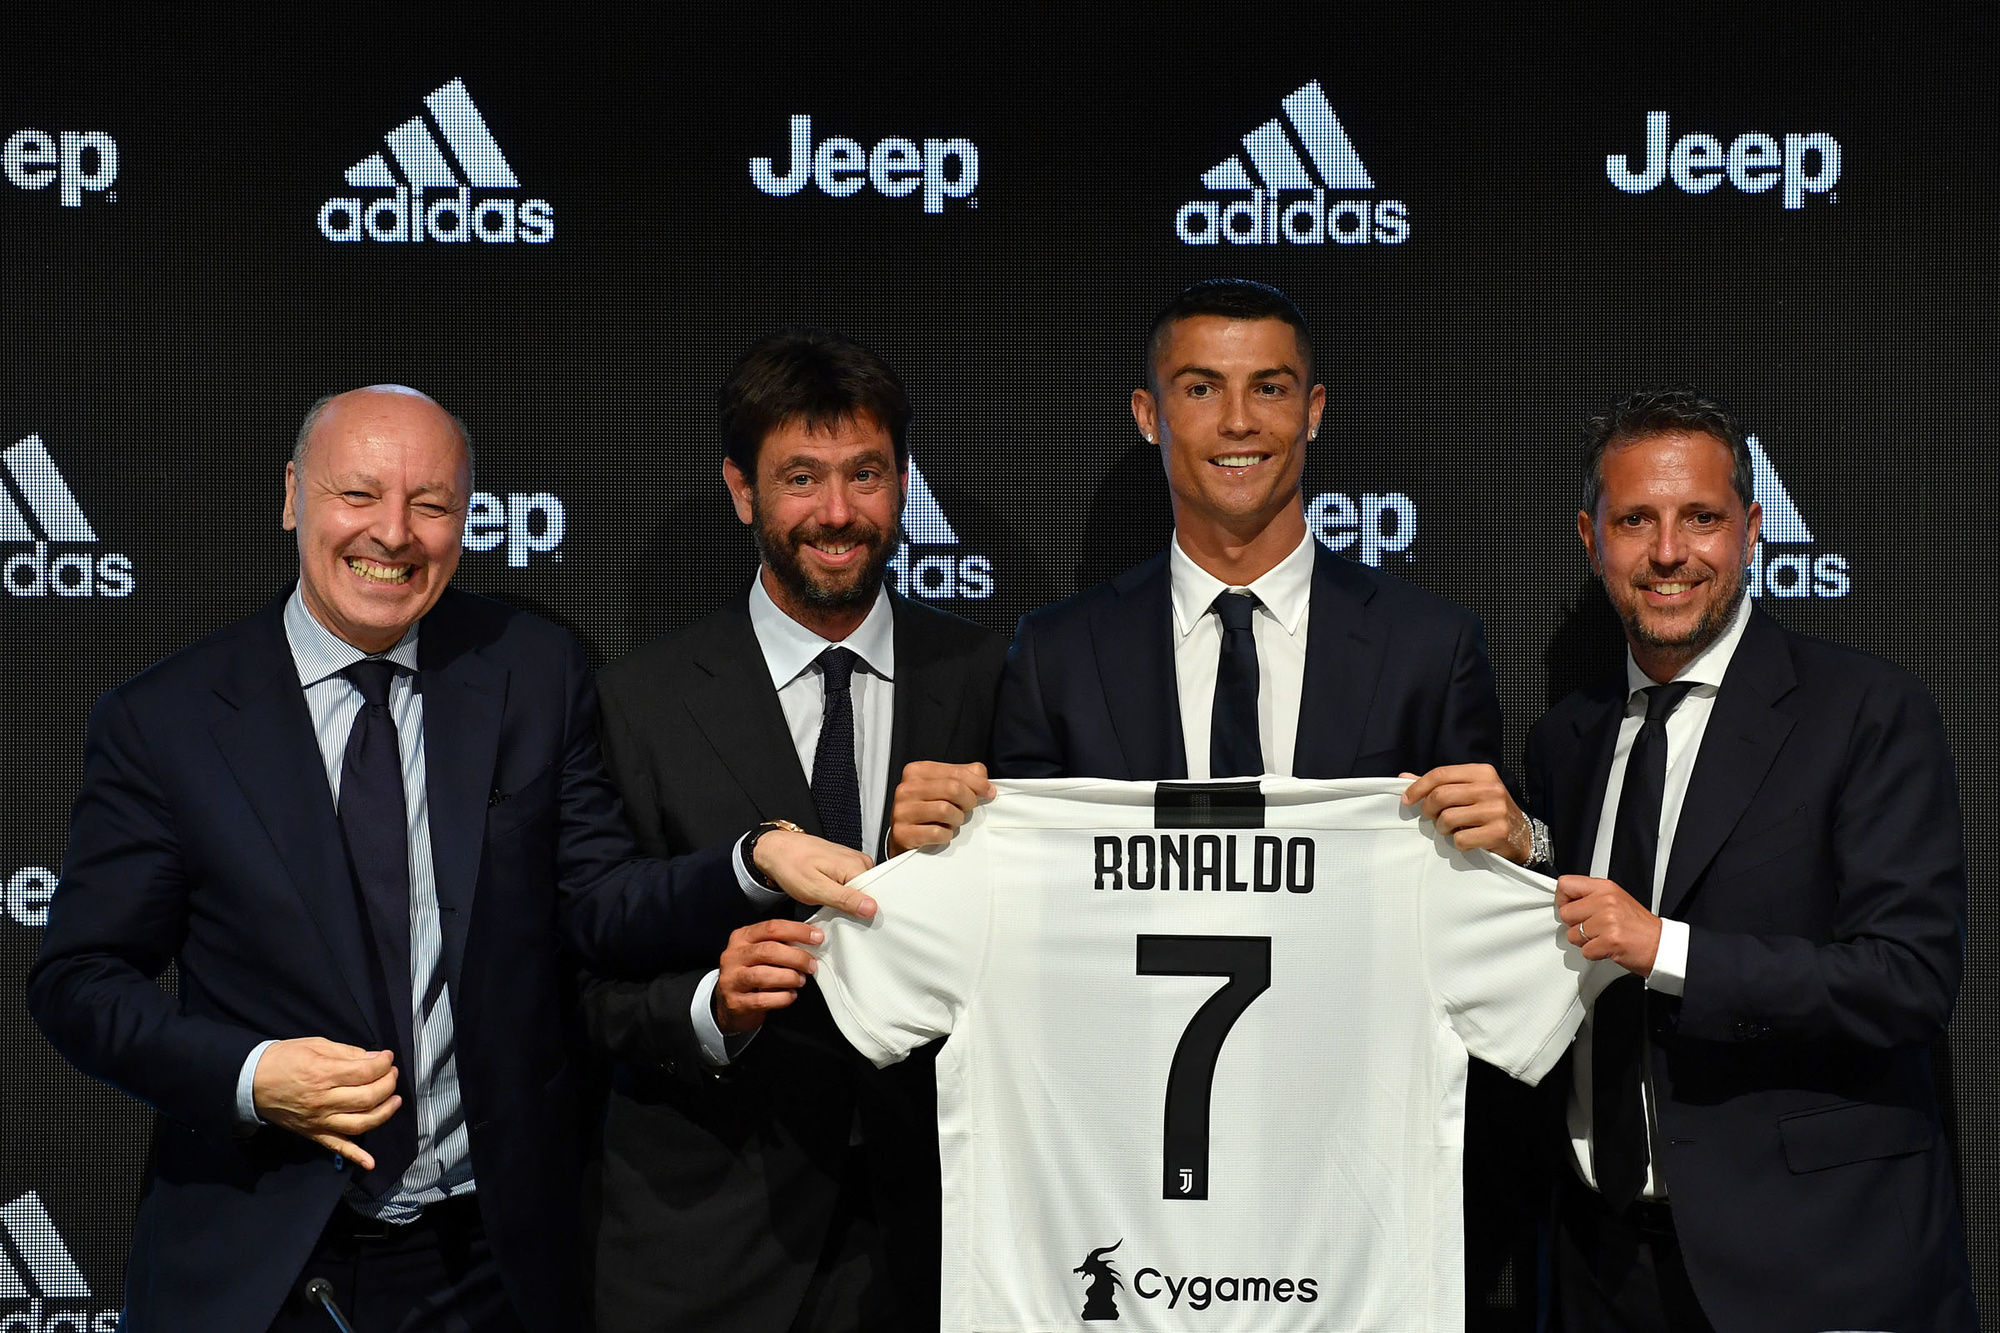 Andrea Agnelli met superster Cristian Ronaldo, GETTY